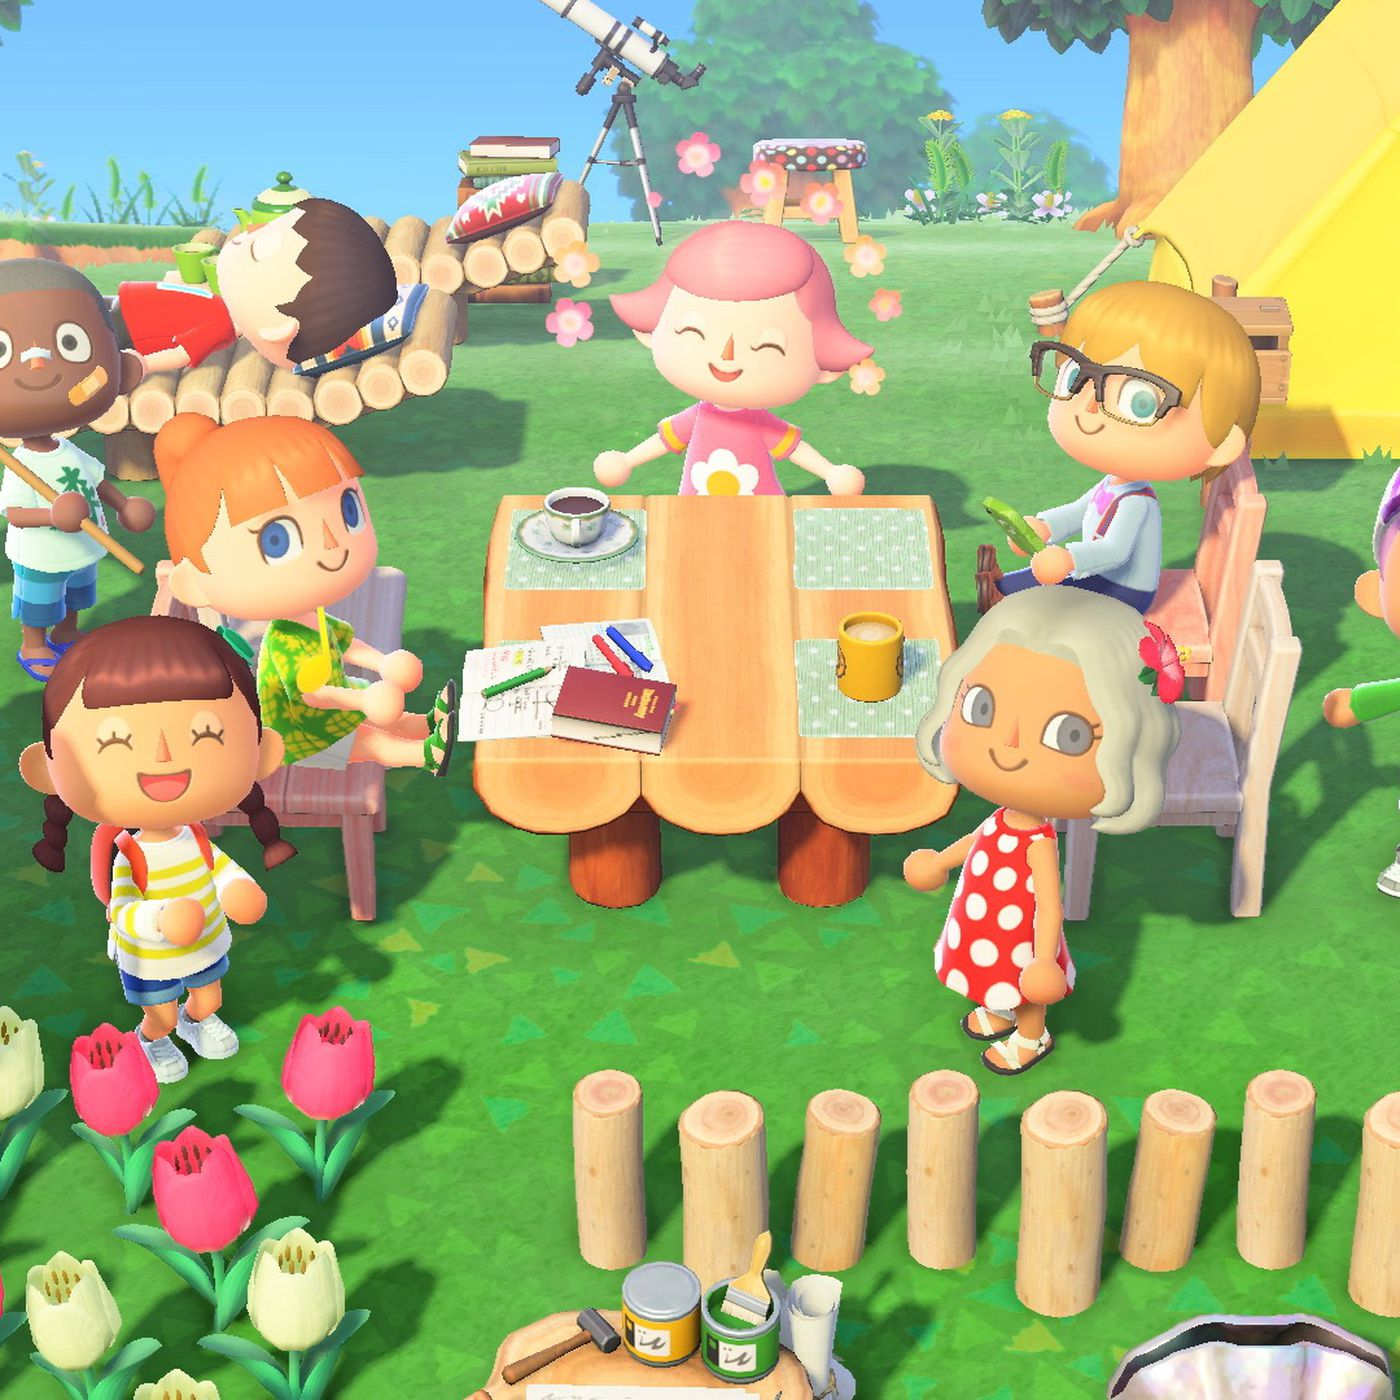 Animal Crossing New Horizons Creators Hope Game Can Be An Escape